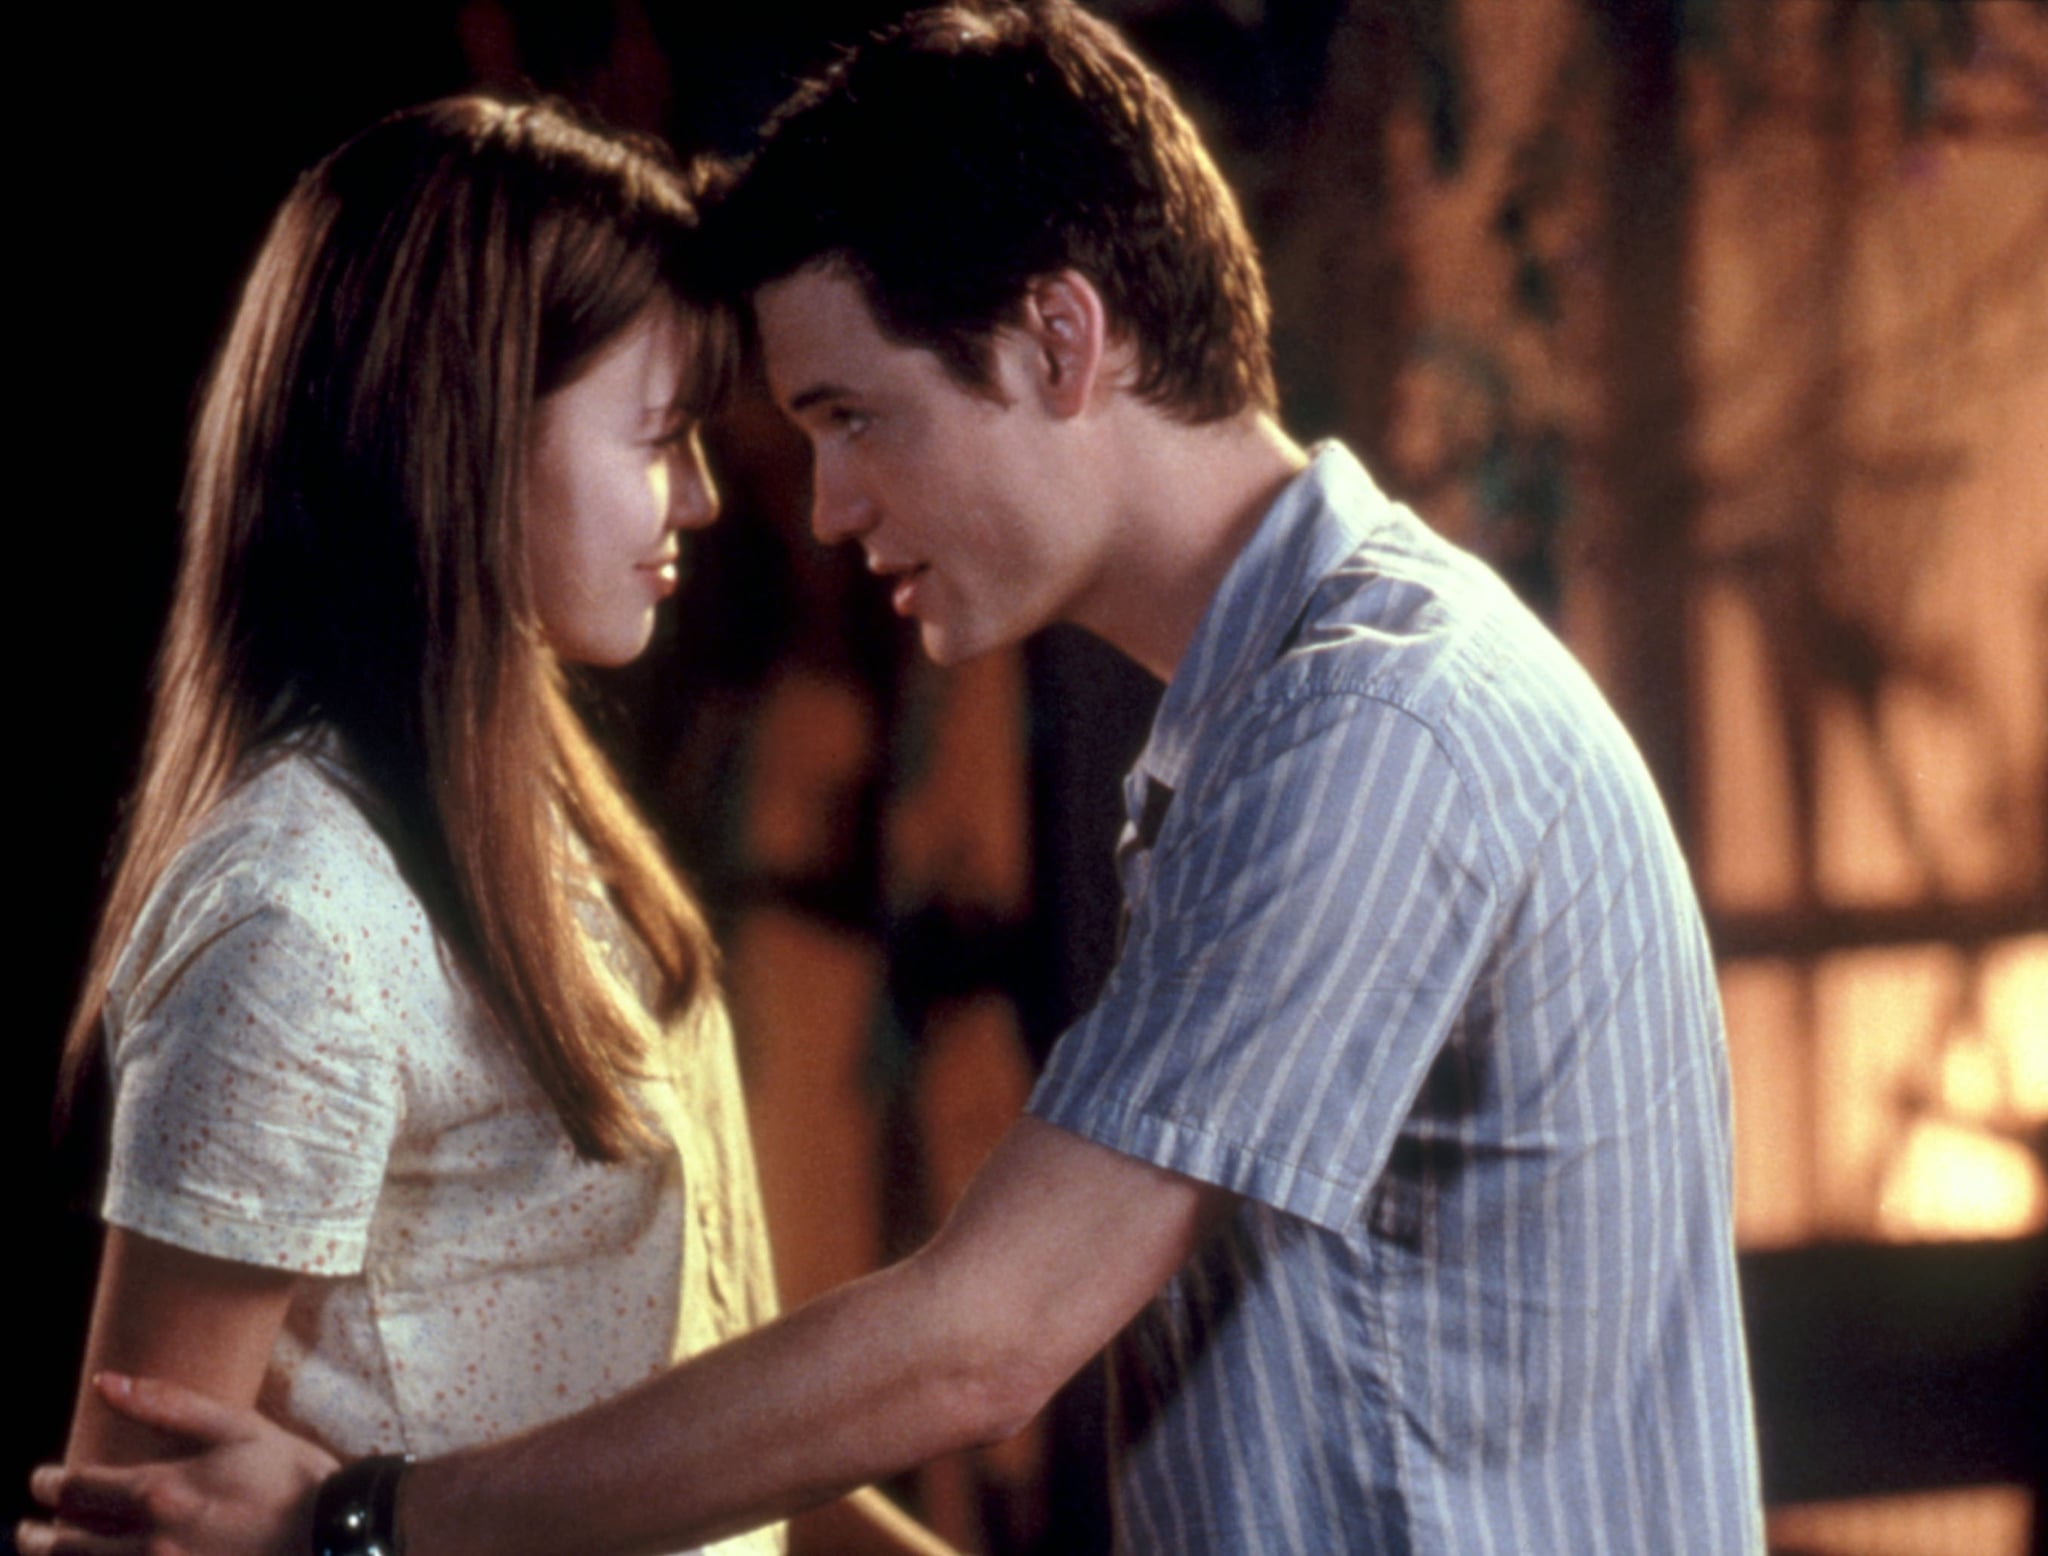 A WALK TO REMEMBER, Mandy Moore, Shane West, 2002. Warner Brothers/courtesy Everett Collection.